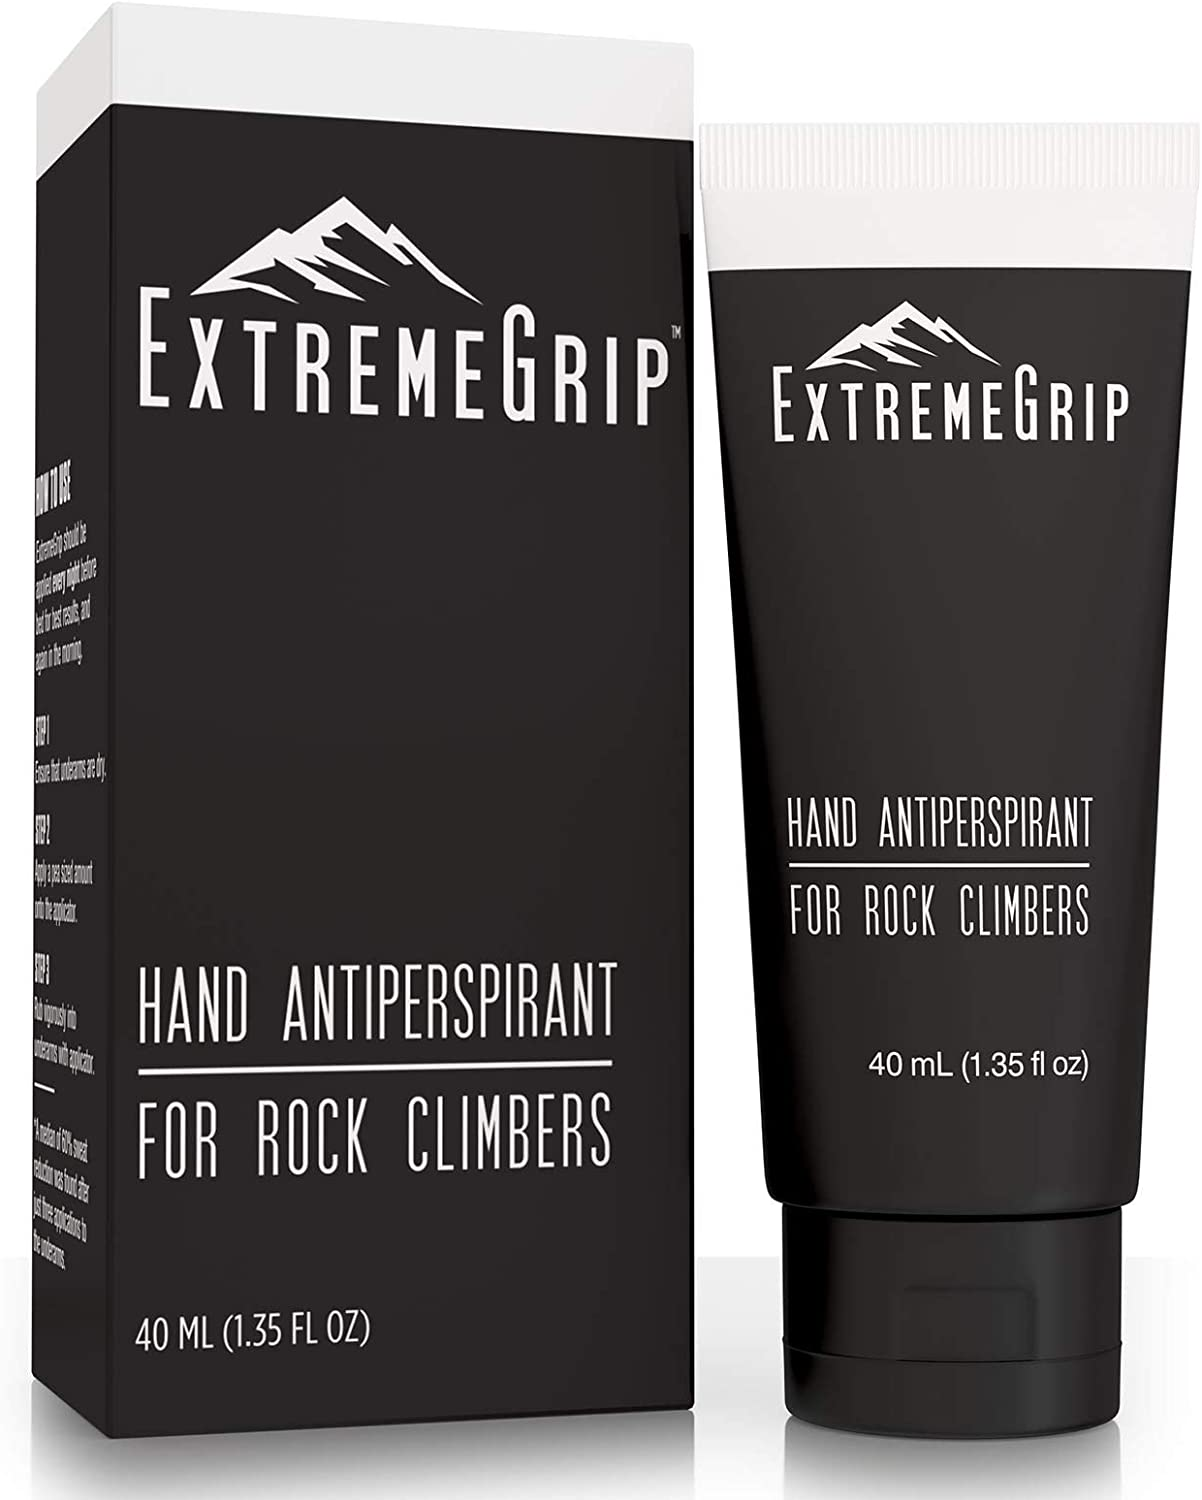 ExtremeGrip - World's First Hand Antiperspirant Grip Lotion for Athletes - Less Sweat, Better Climb, Longer Lift - for Climbing, Weightlifting, Basketball, Gymnastics, Golf, Tennis, and Pole Vaulting : Sports & Outdoors